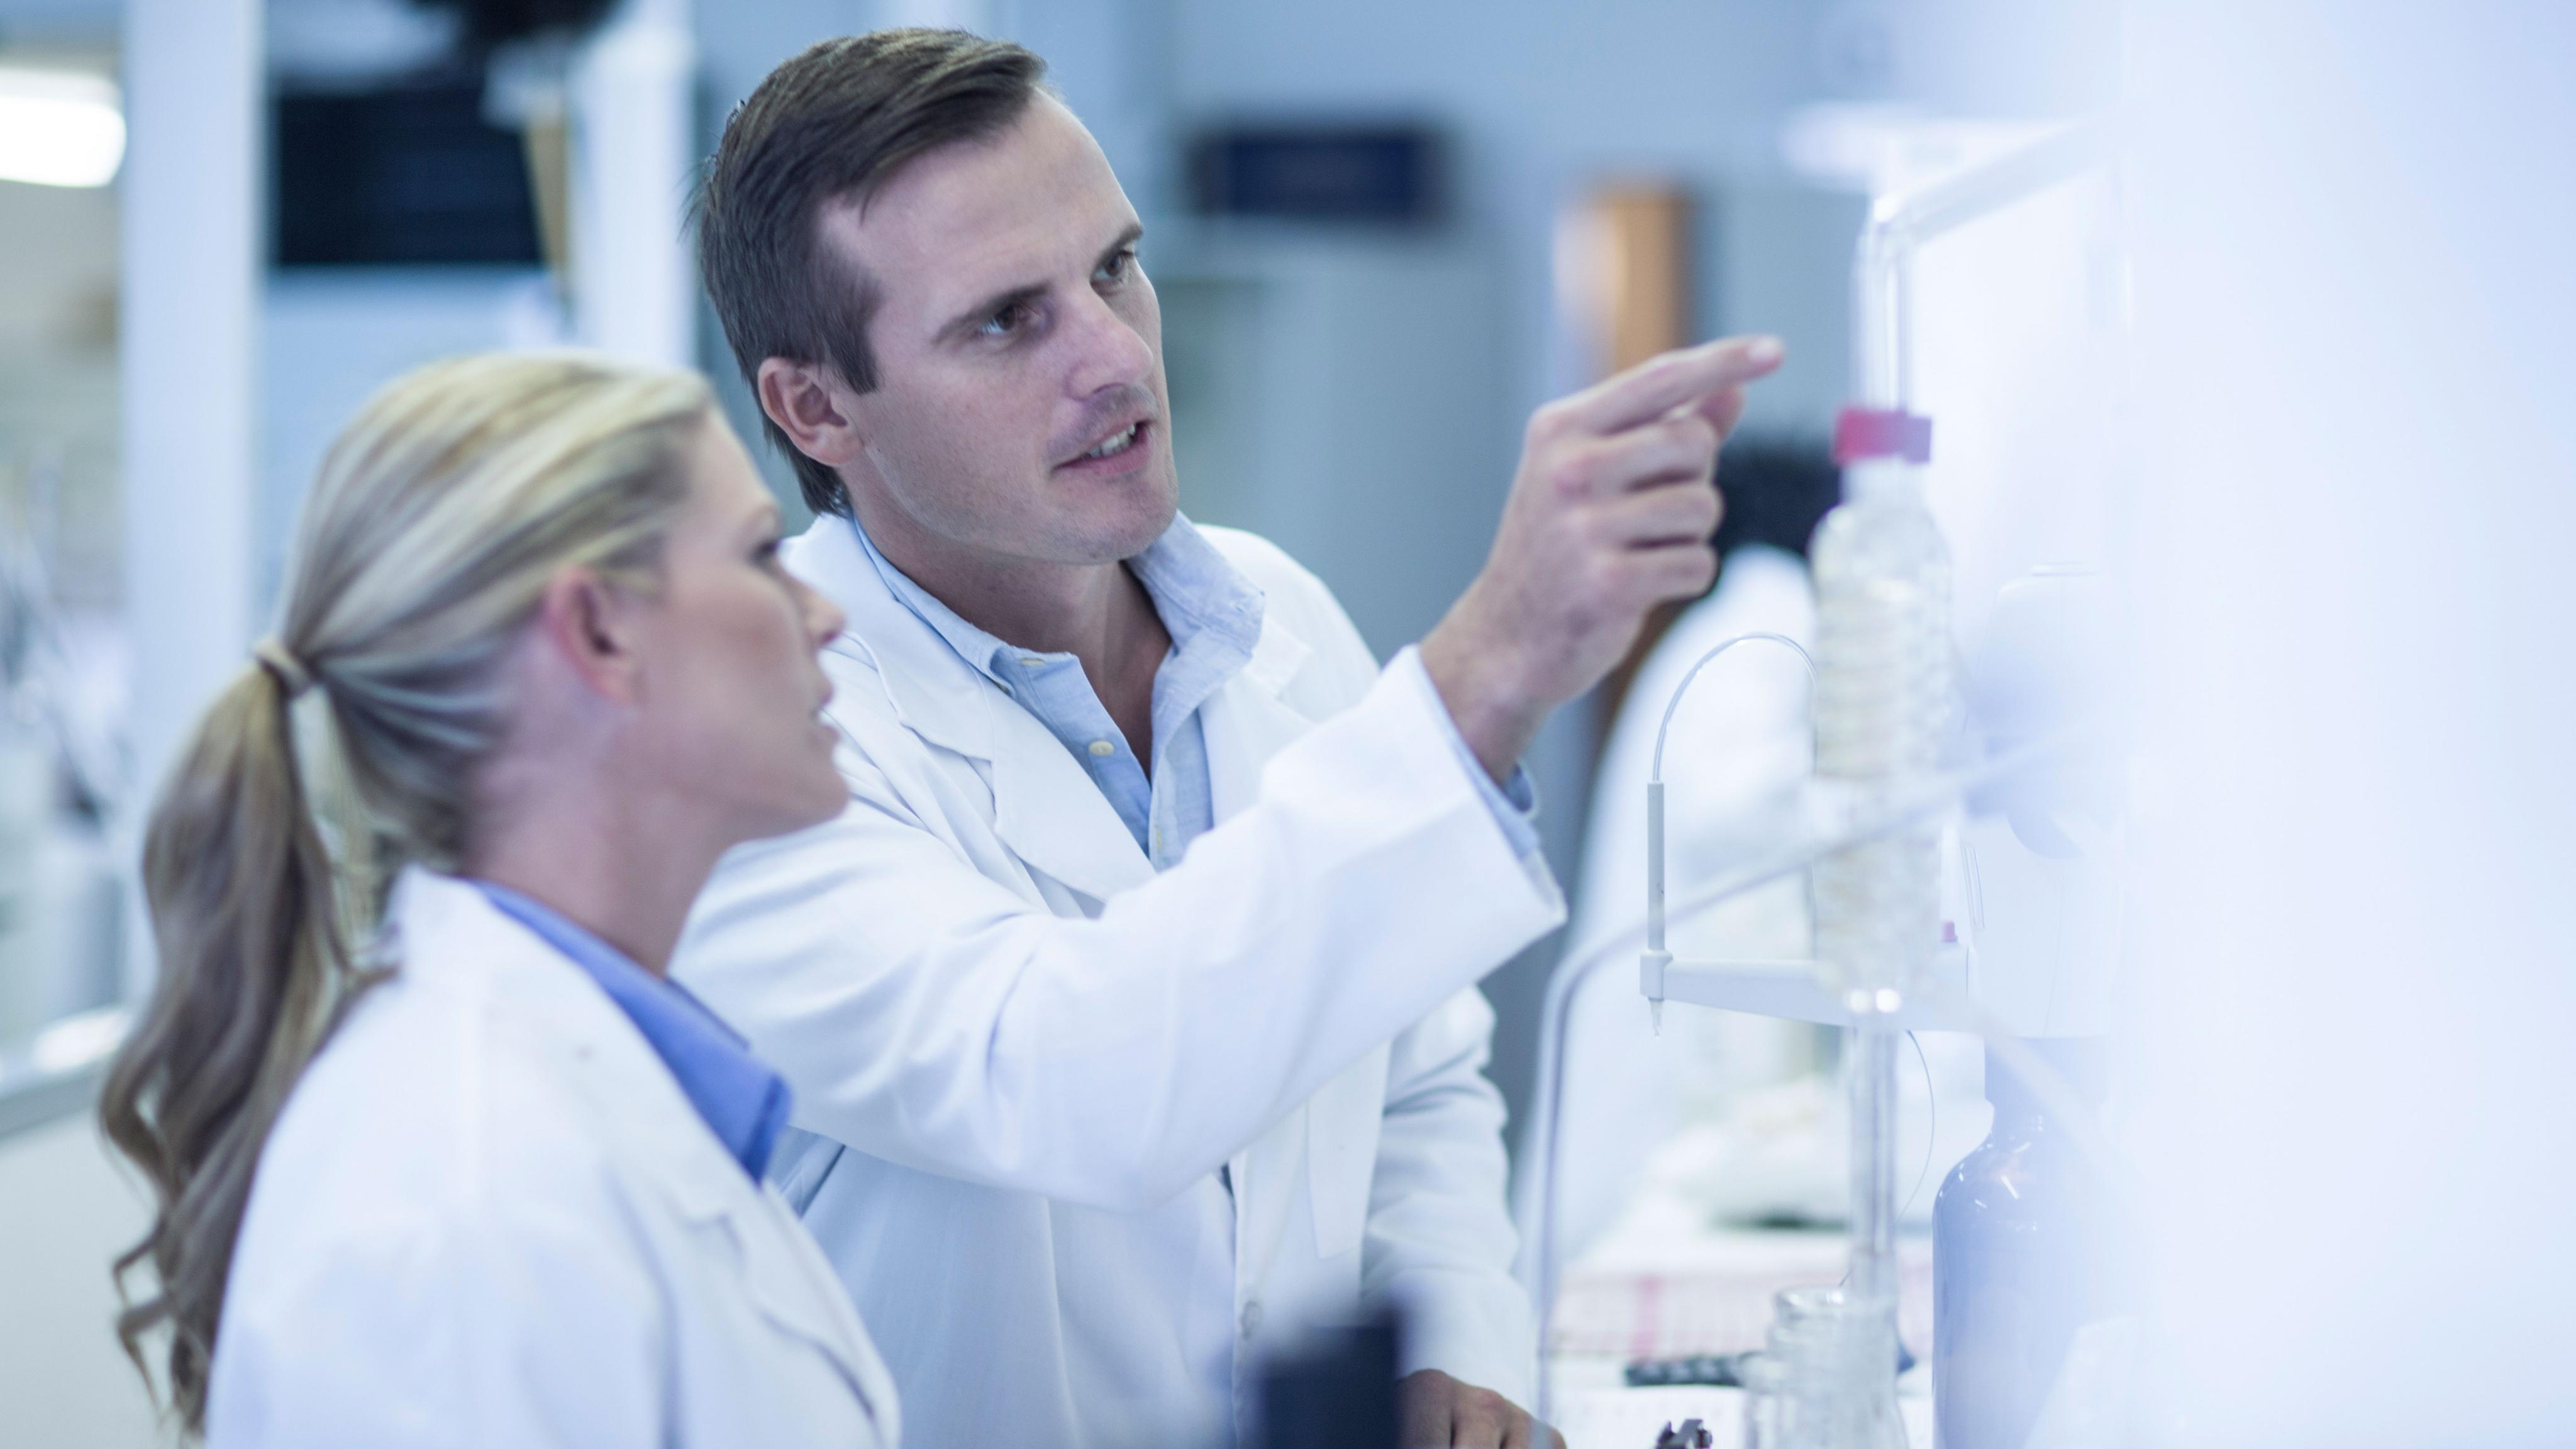 Increasing Workforce Productivity in the Diagnostic Laboratory